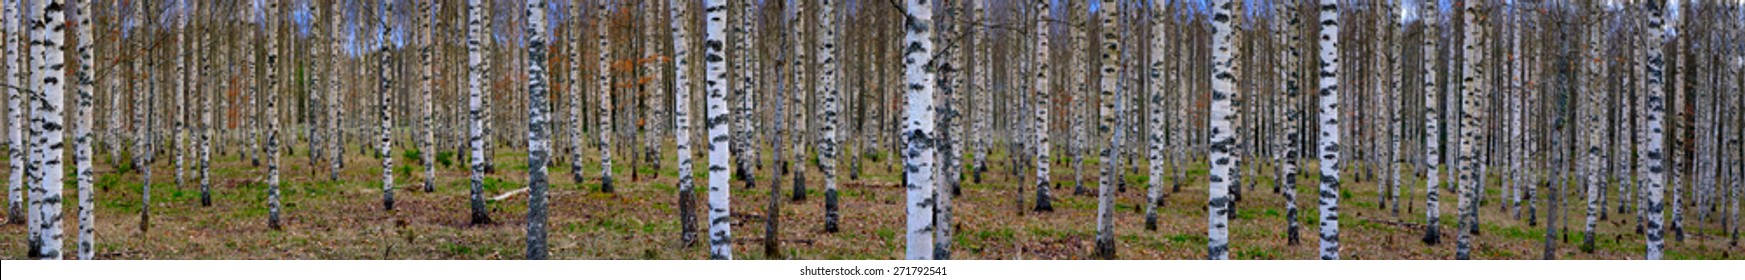 Panoramic view of bare trees in scandinavian birch forest in early spring